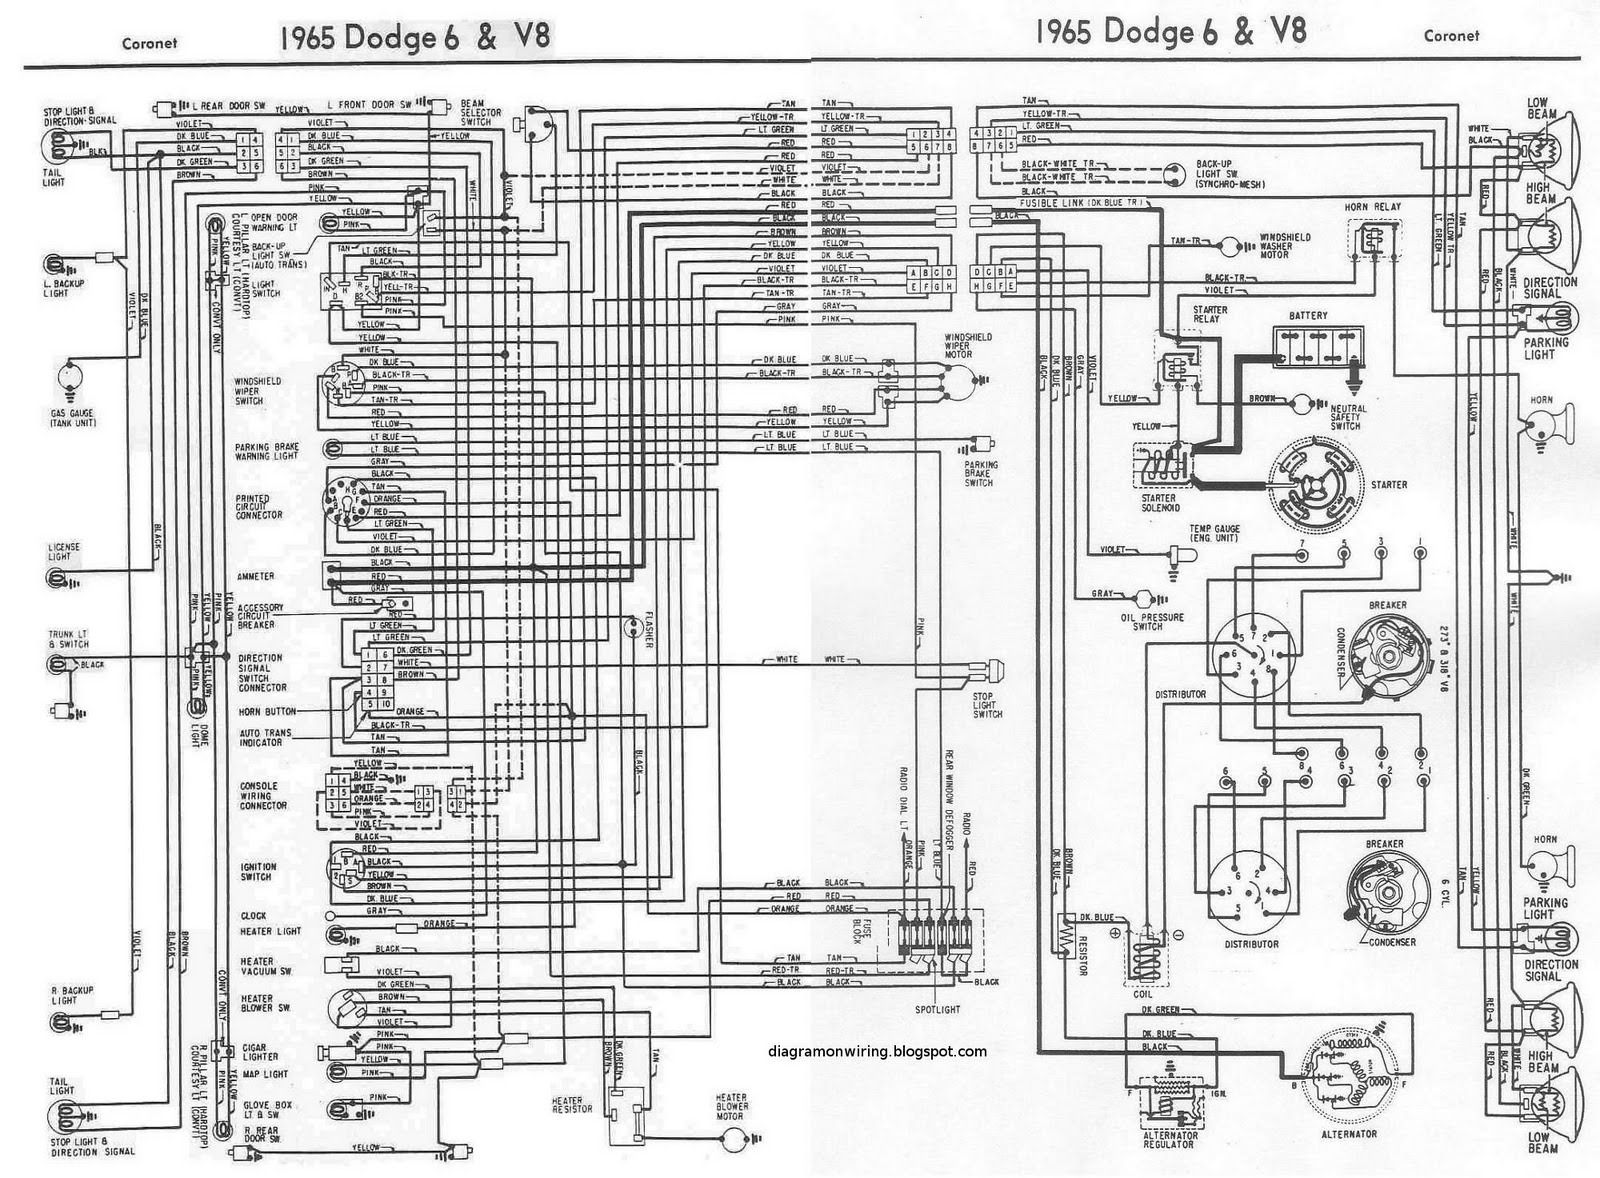 medium resolution of 1967 dodge alternator wiring wiring diagram repair guides1966 plymouth alternator wiring electrical wiring diagram1967 dodge alternator